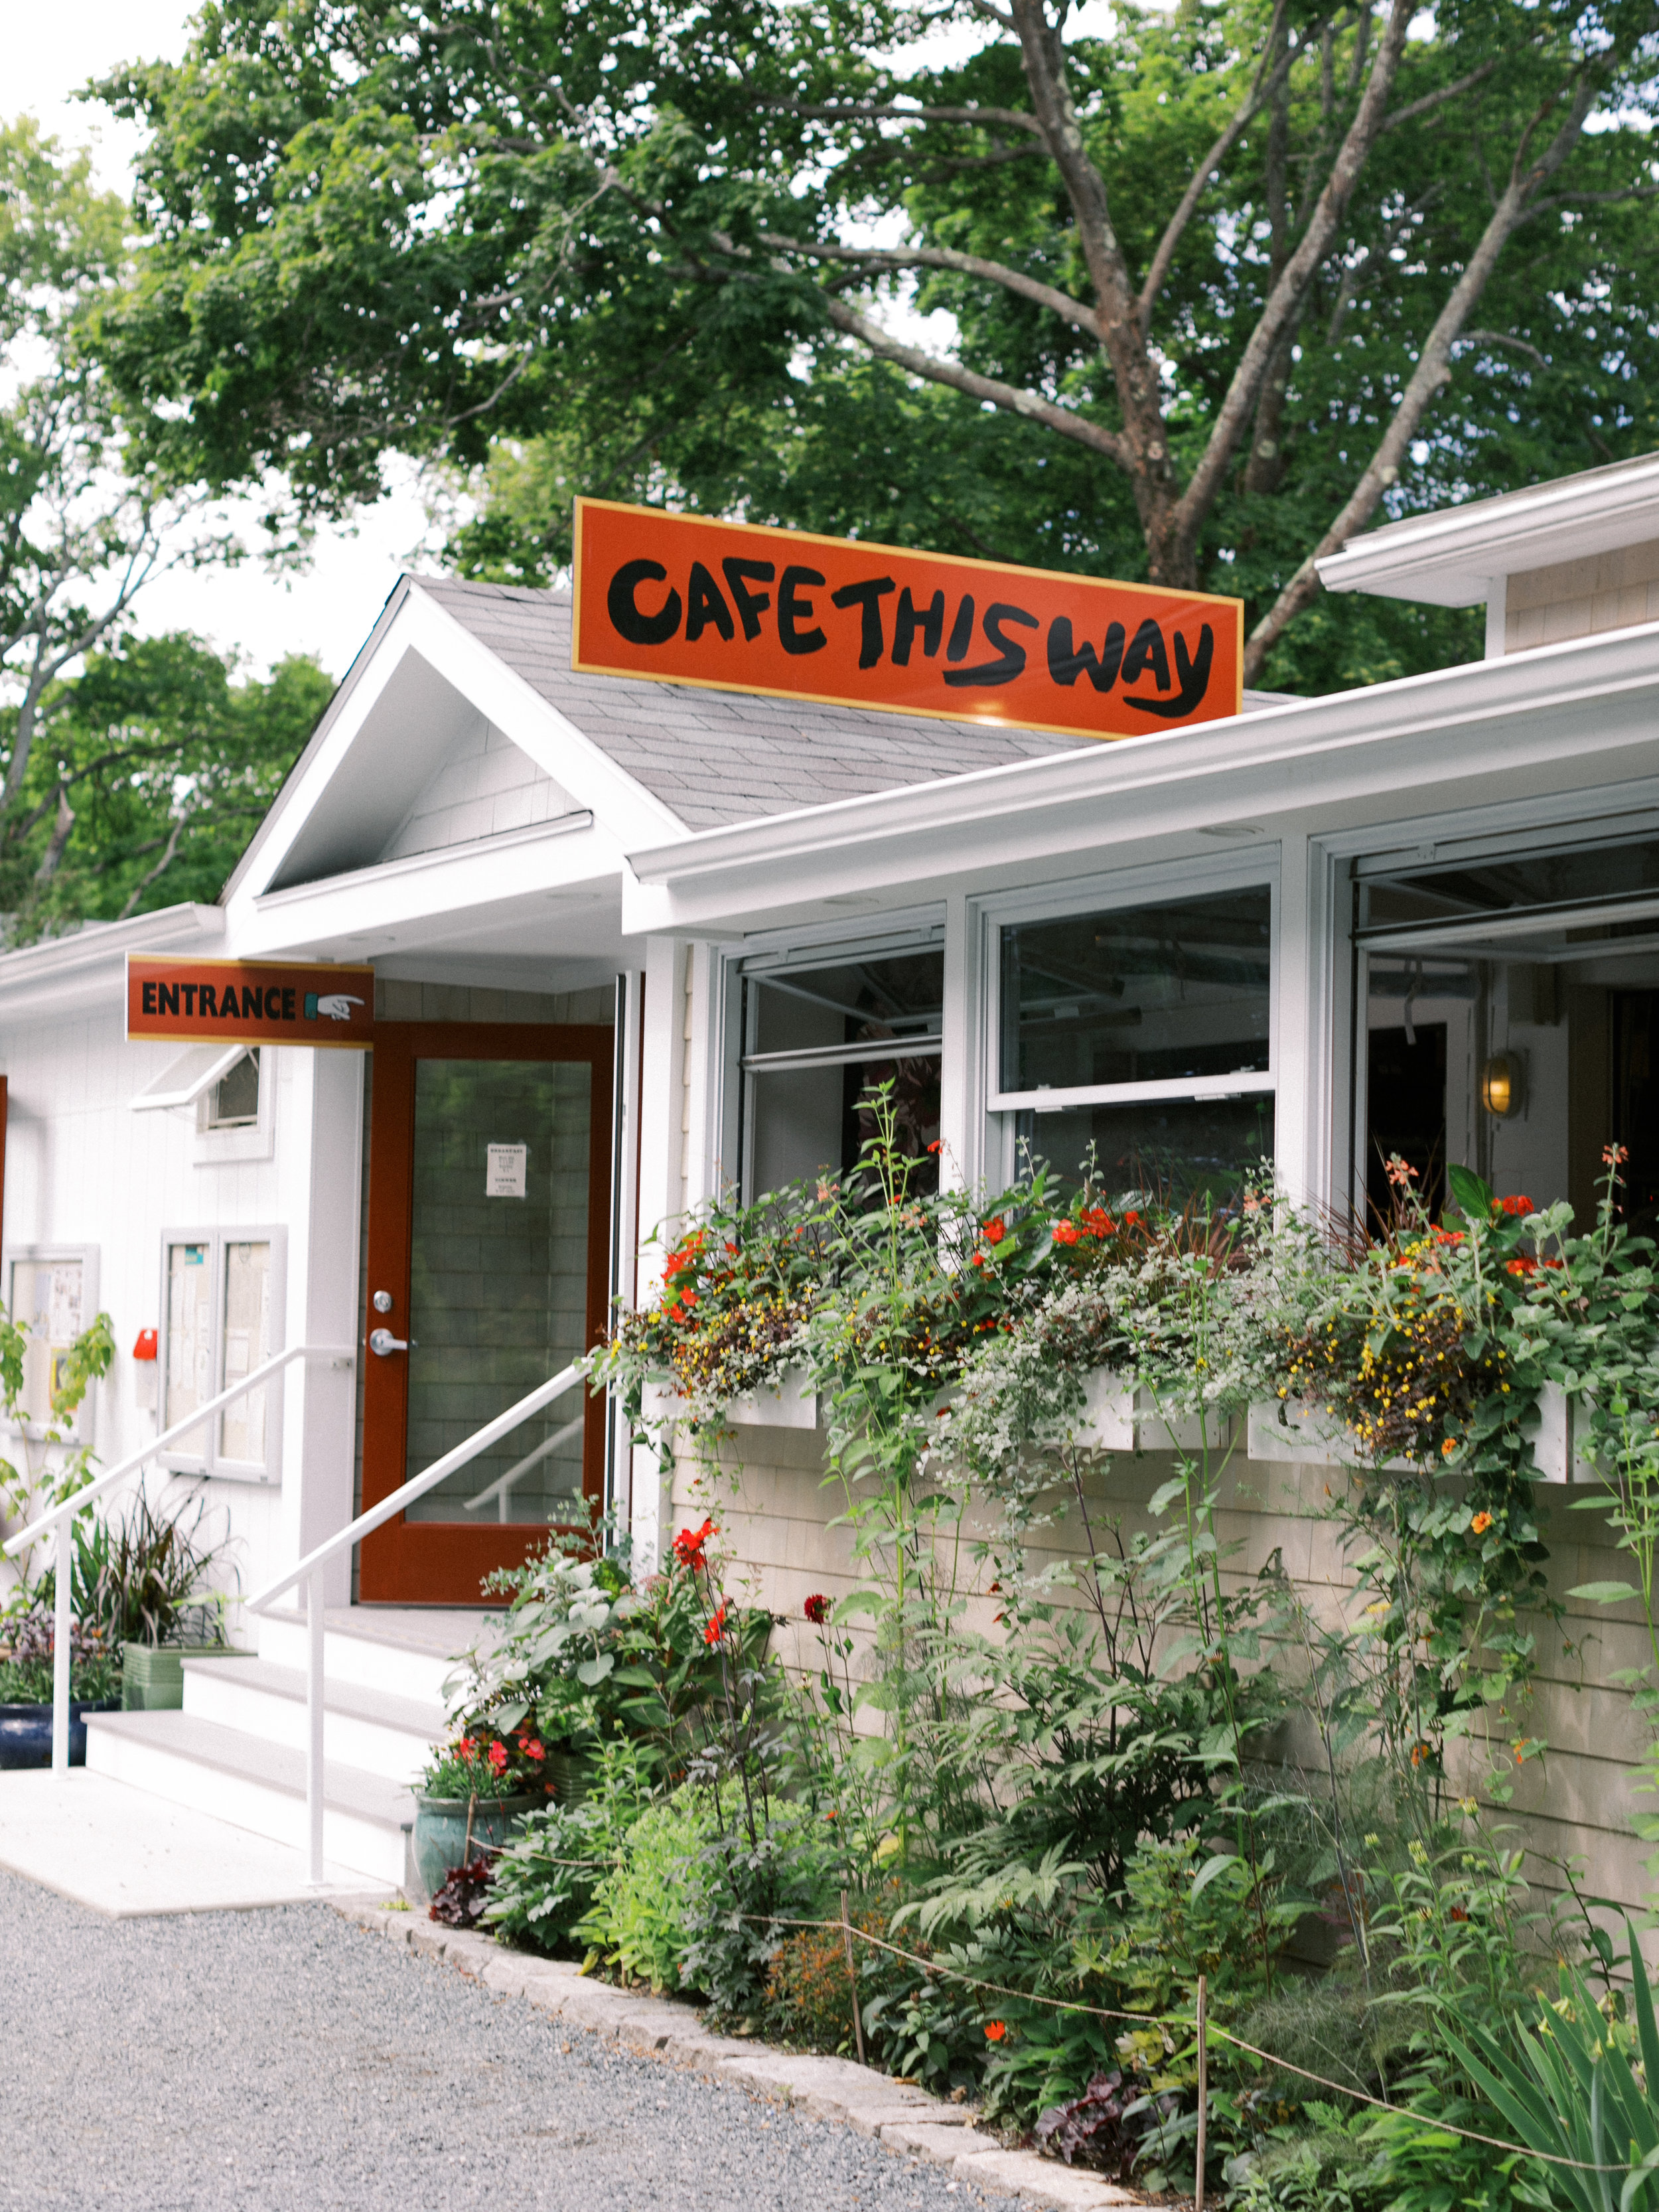 - Café This Way: Make sure not to skip breakfast. This place is off one of the main drags, and some cute painted shoe steps help guide the way down. All you need to know is that I love blueberry pancakes, and they make the best blueberry pancakes I've ever had in my life.